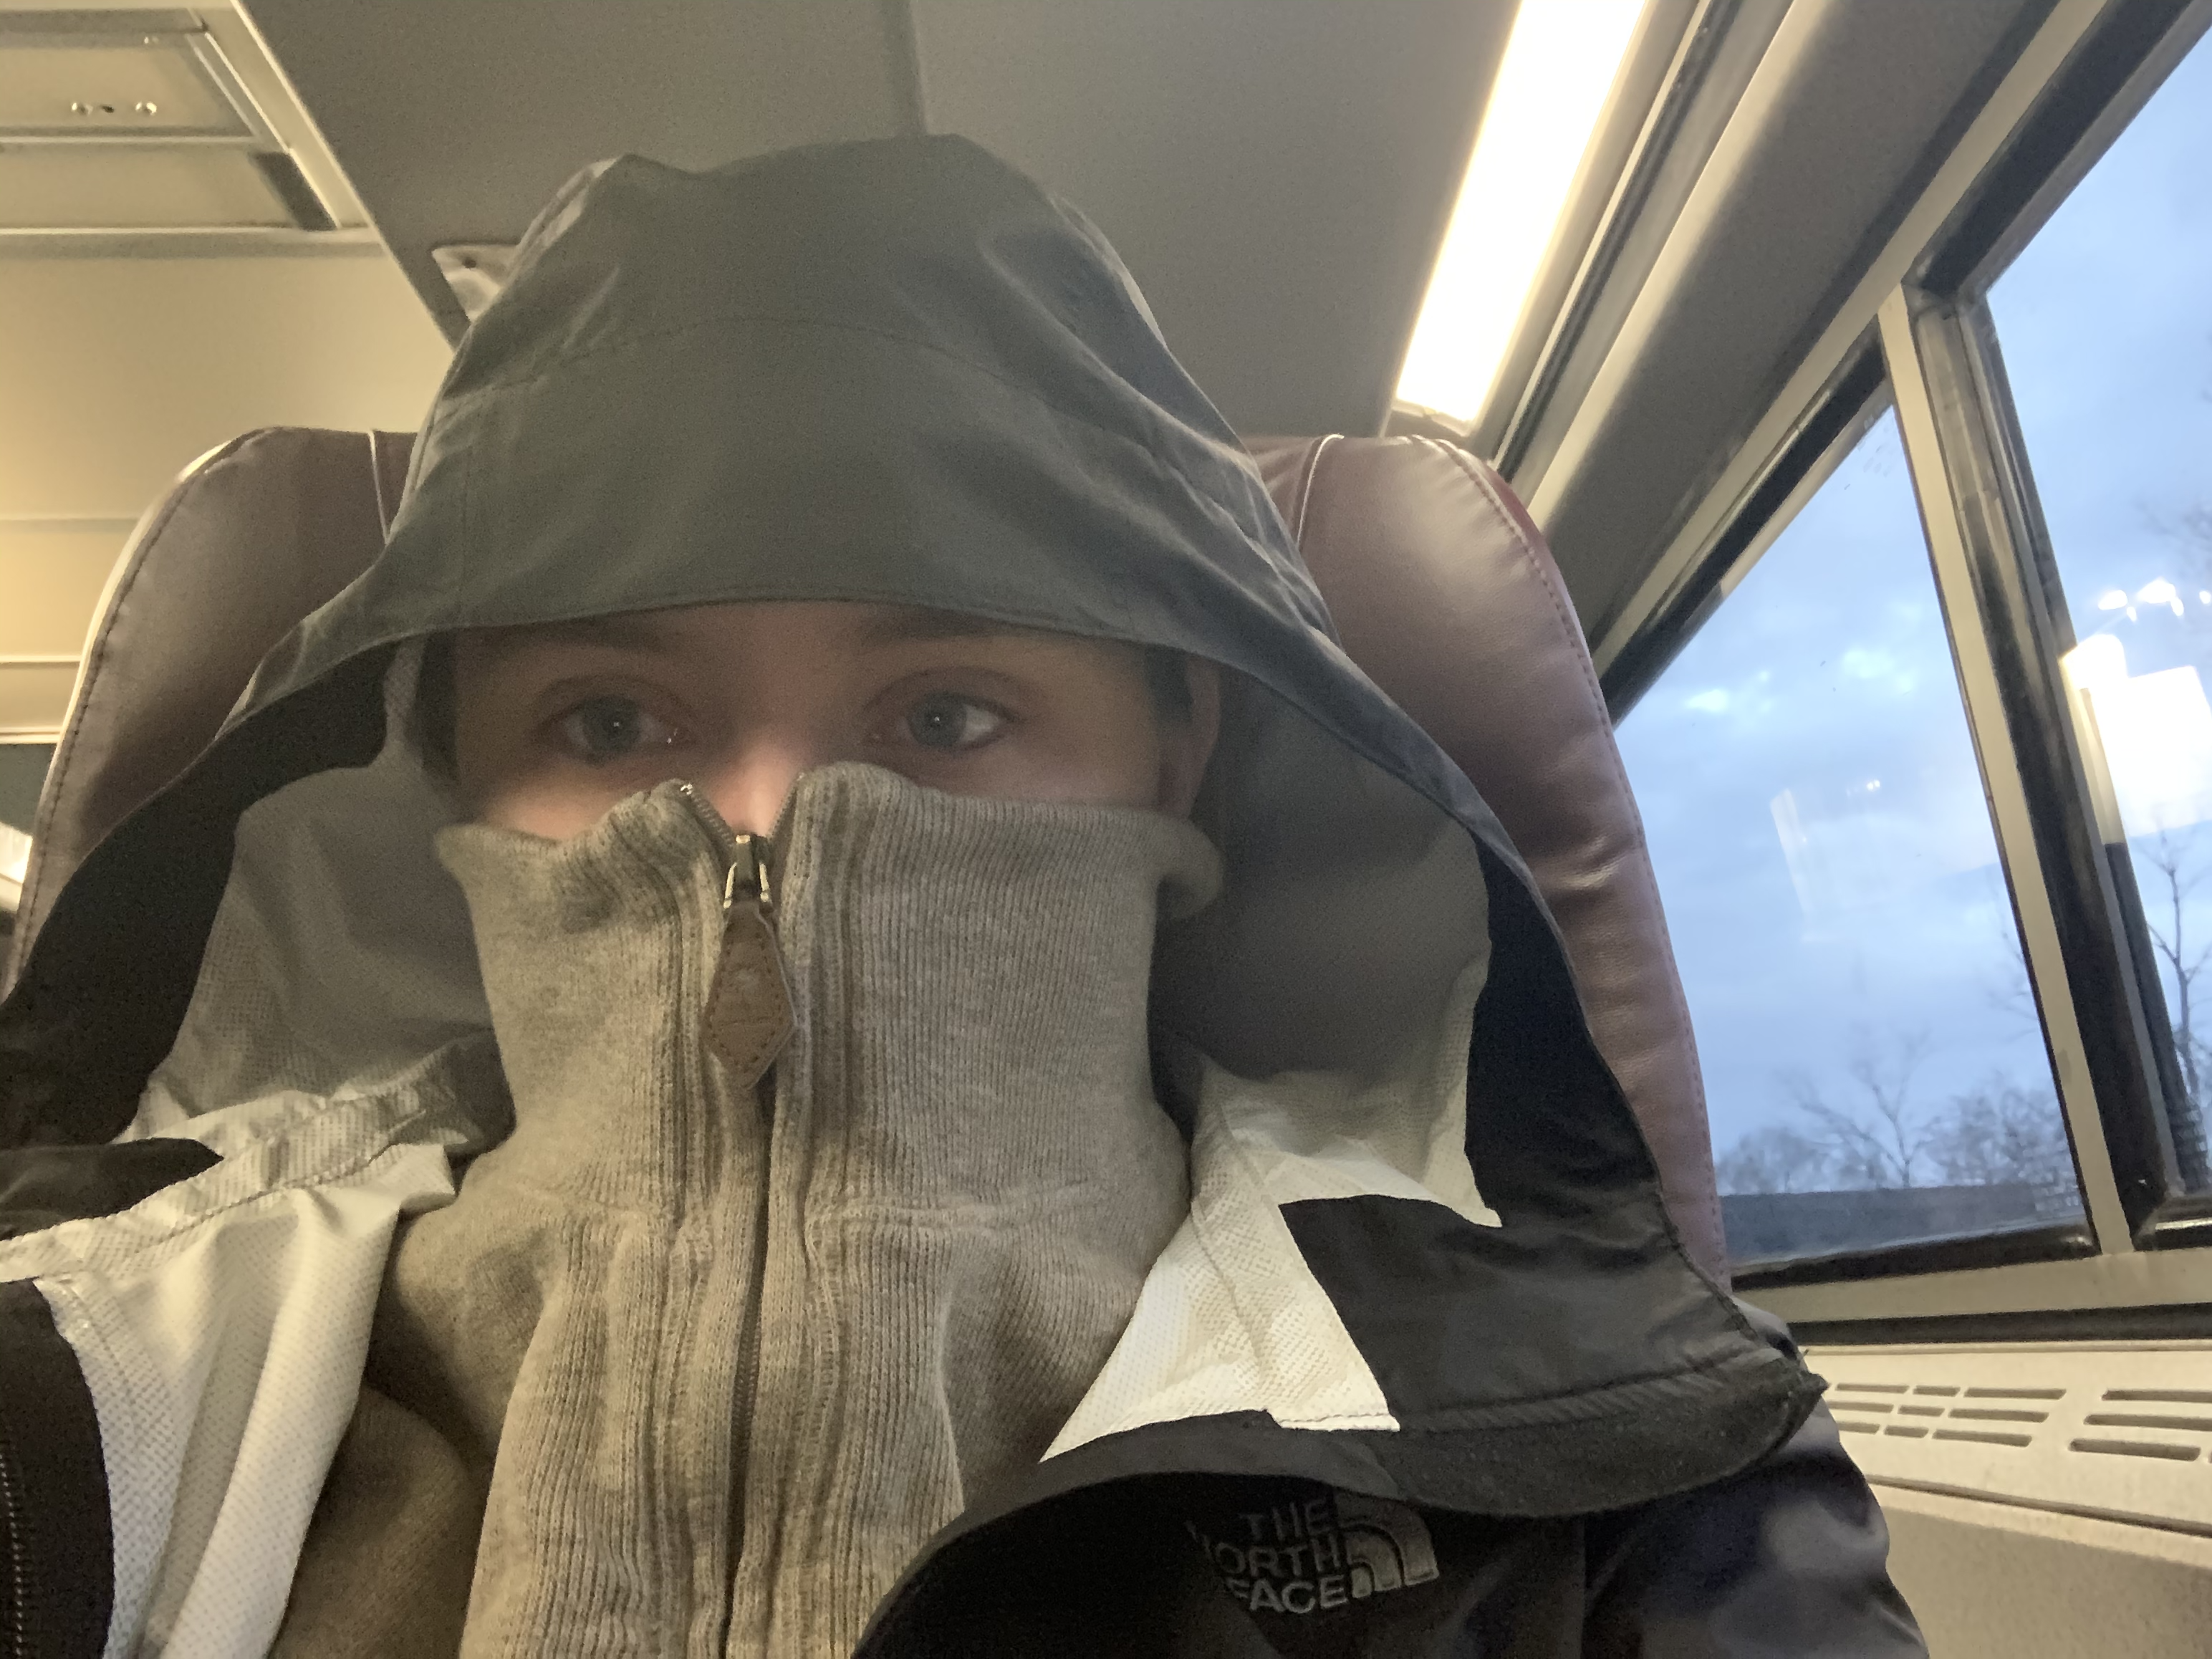 Allison Ingrum on Amtrak train from Syracuse to New York City with jacket zipped over face